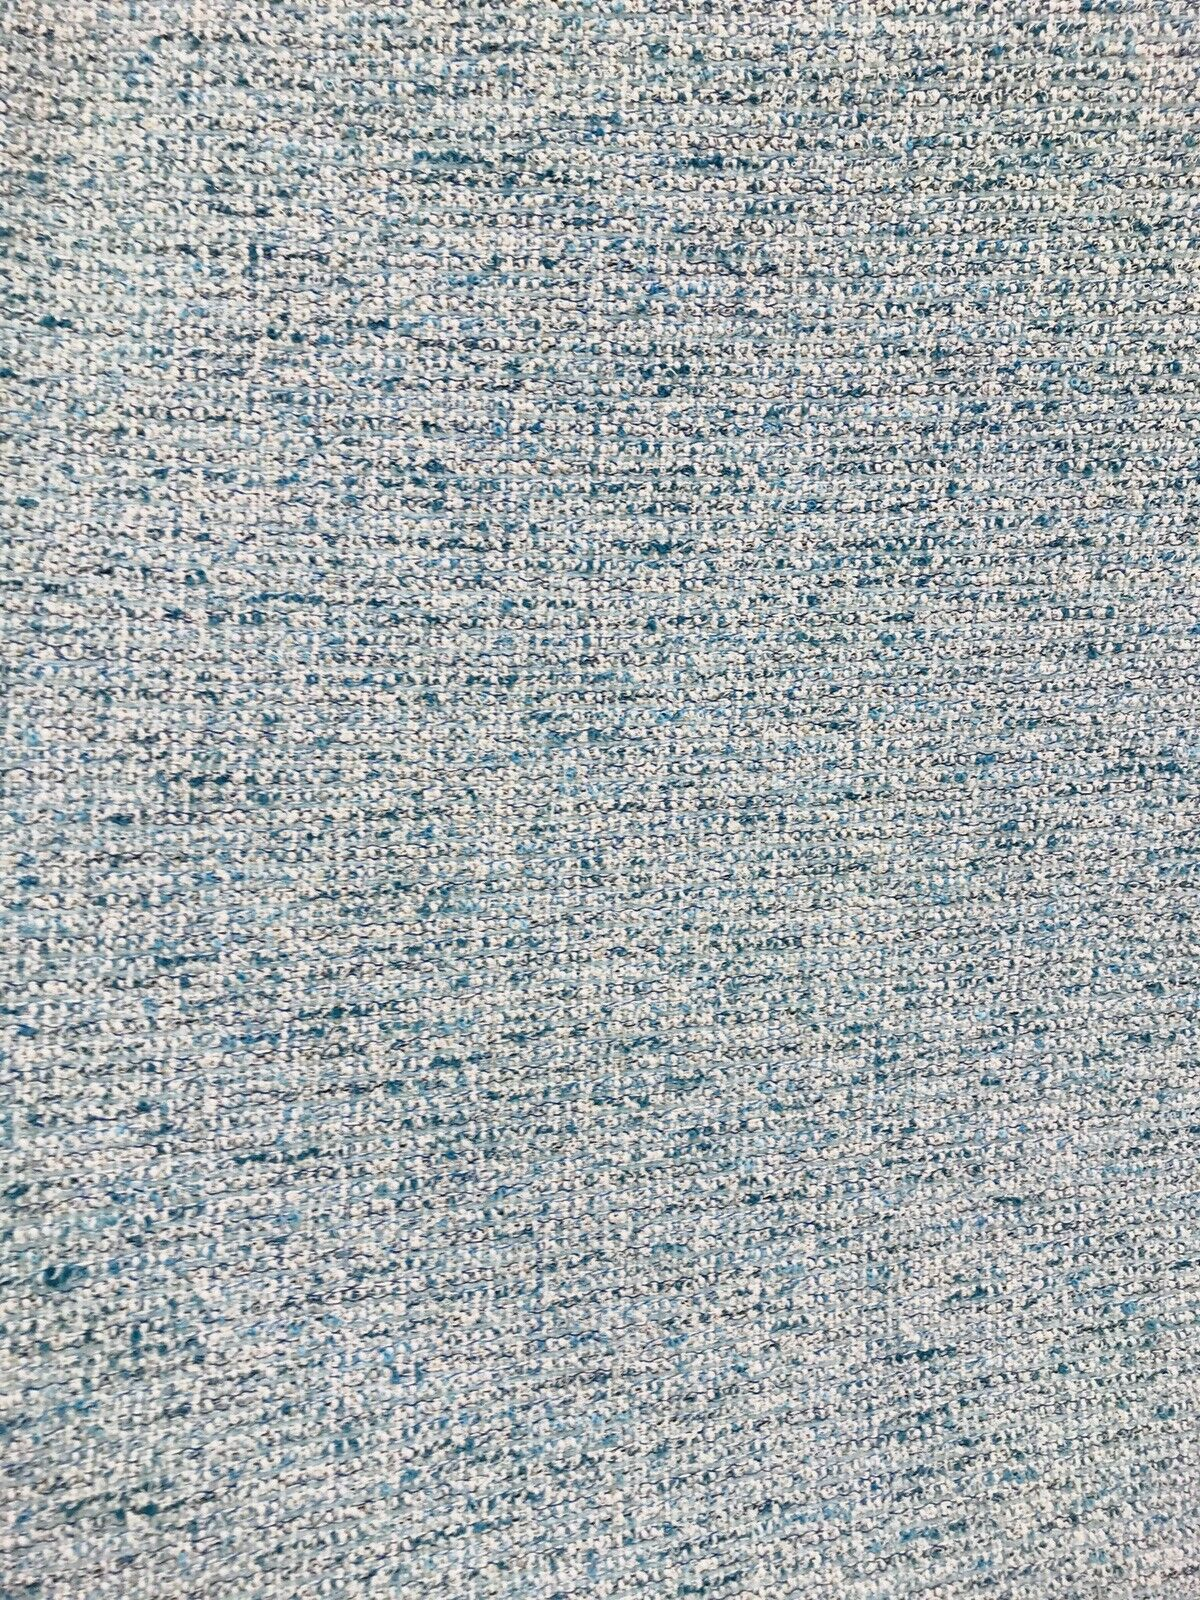 Designer Upholstery Heavyweight Tweed Fabric- Aqua Blue- Sold By The Yard